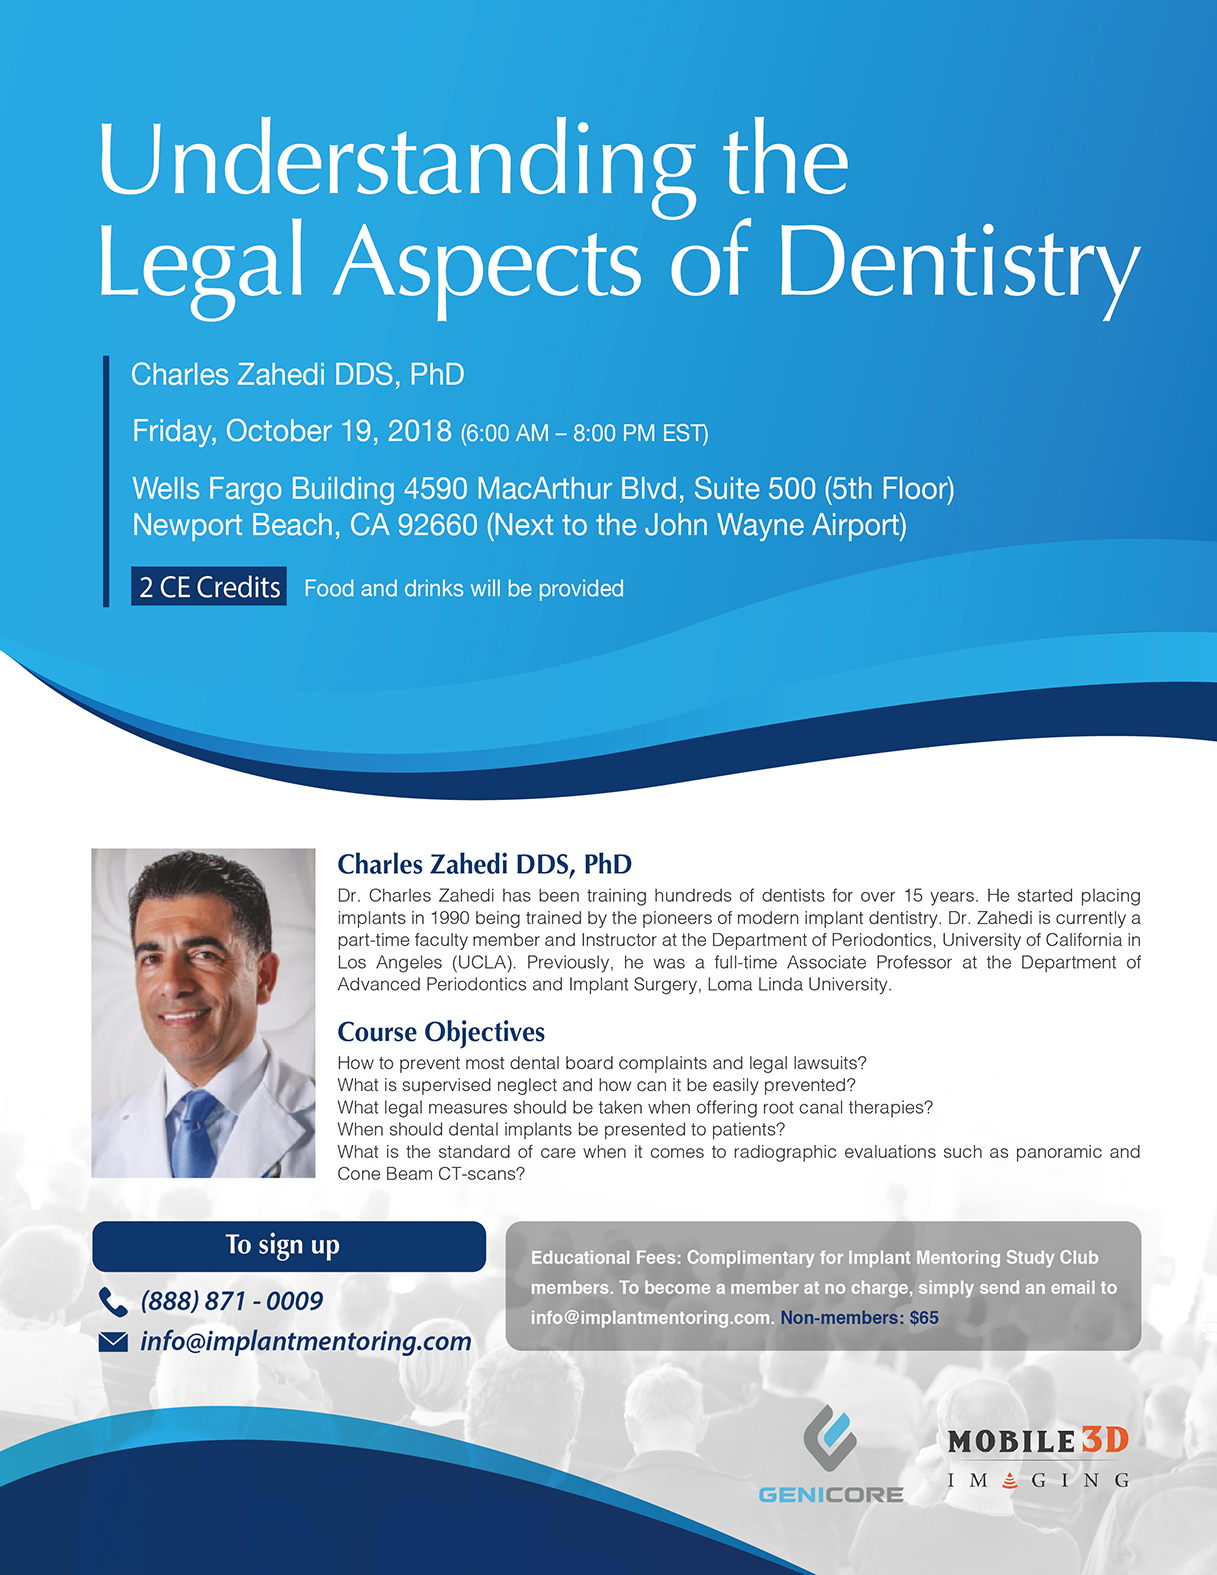 Understanding the Legal Aspects of Dentistry - October 19, 2018